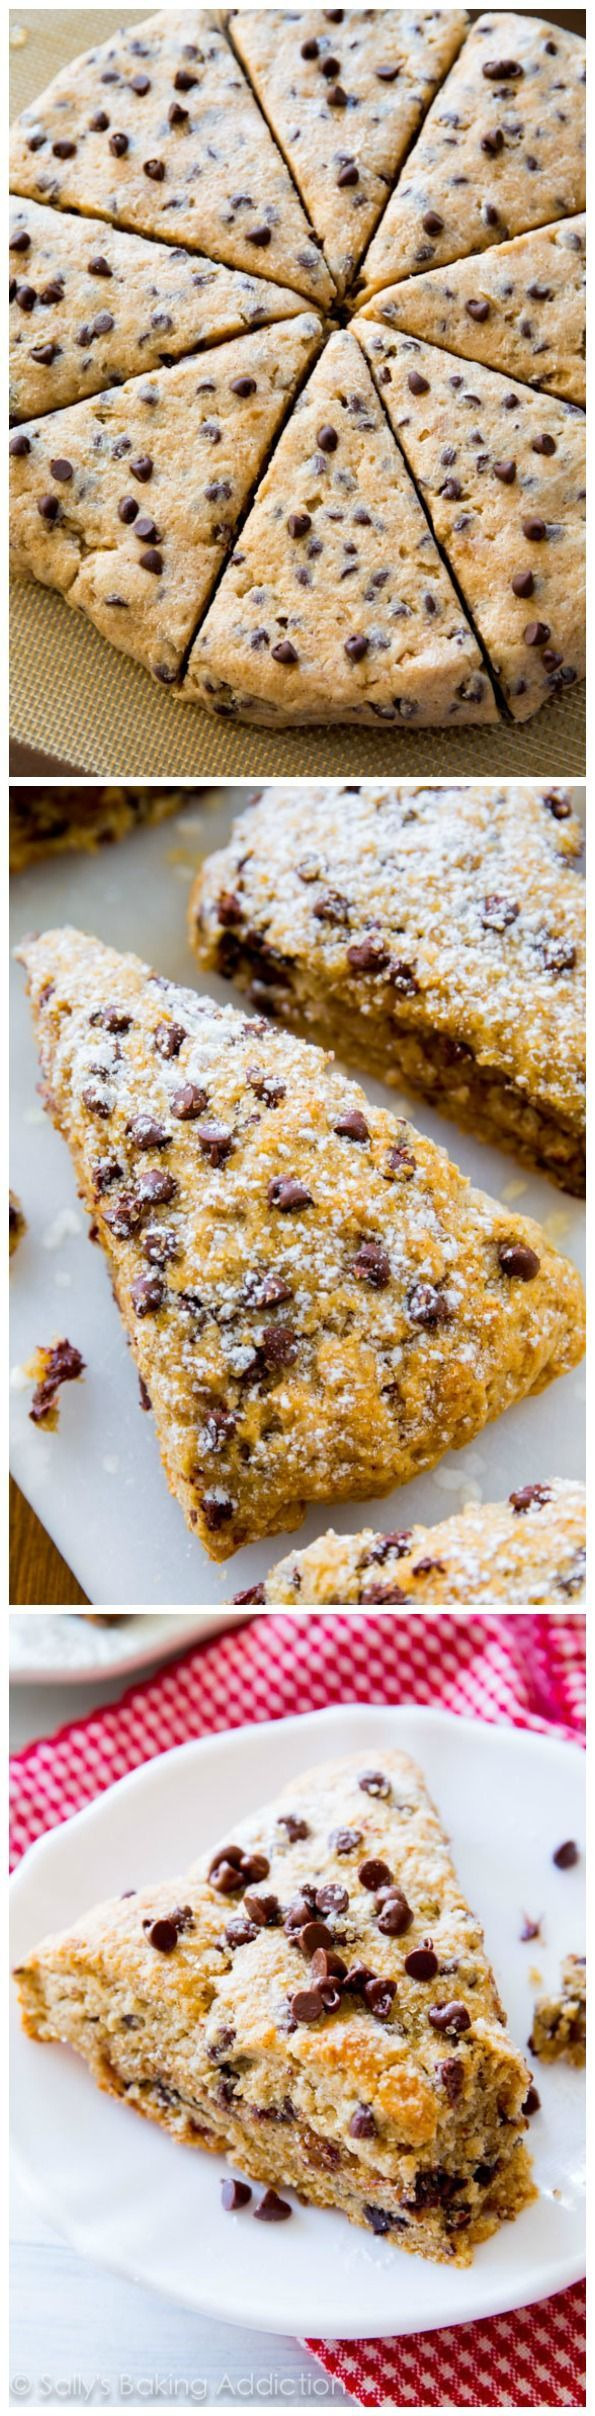 THE BEST! These simple chocolate chip scones are going crazy with readers and they're my favorite!